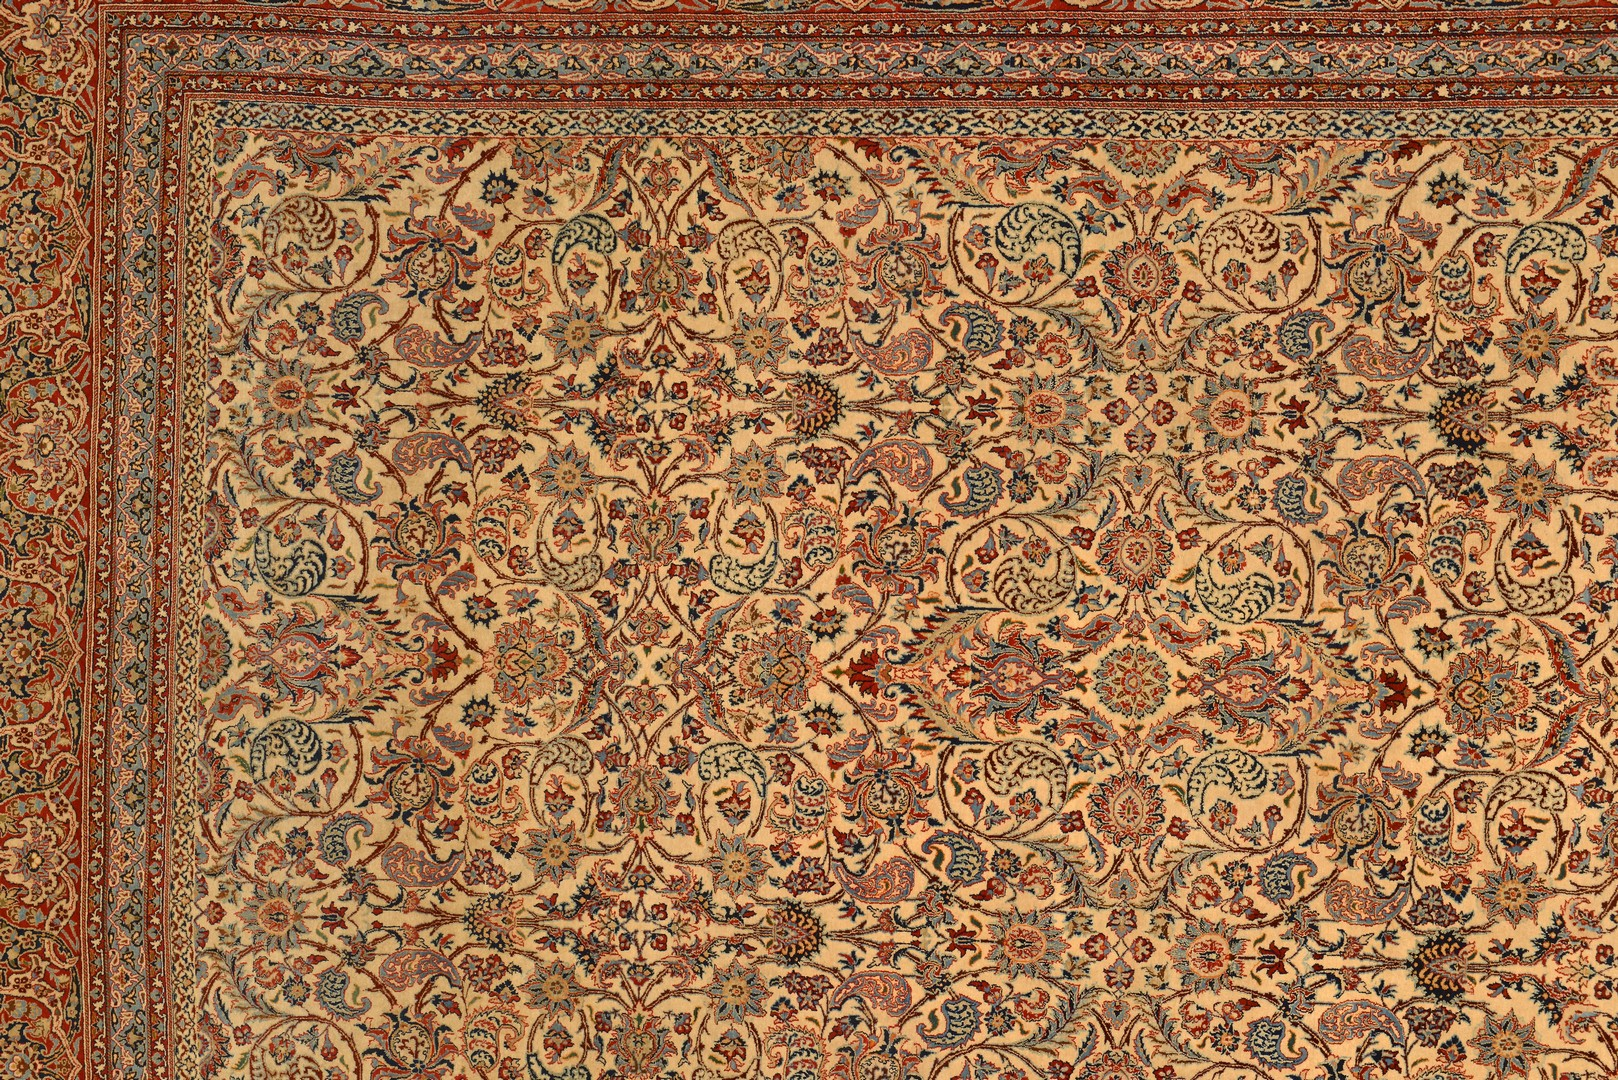 Lot 247: Fine Persian Nain or Isfahan Rug